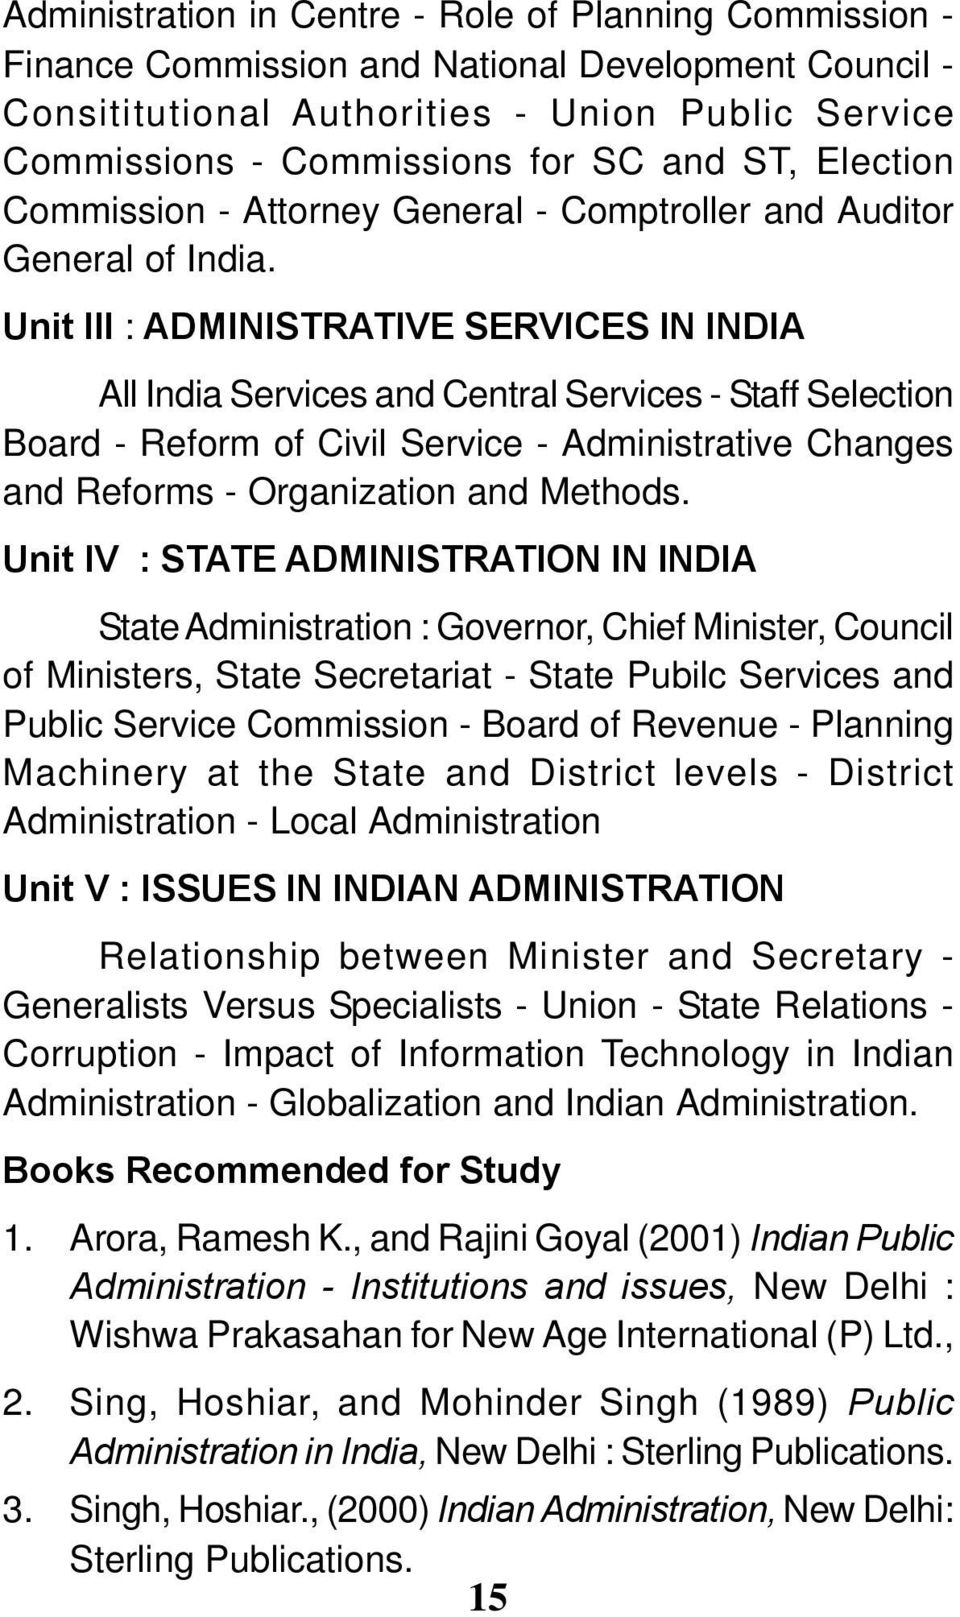 Unit III : ADMINISTRATIVE SERVICES IN INDIA All India Services and Central Services - Staff Selection Board - Reform of Civil Service - Administrative Changes and Reforms - Organization and Methods.